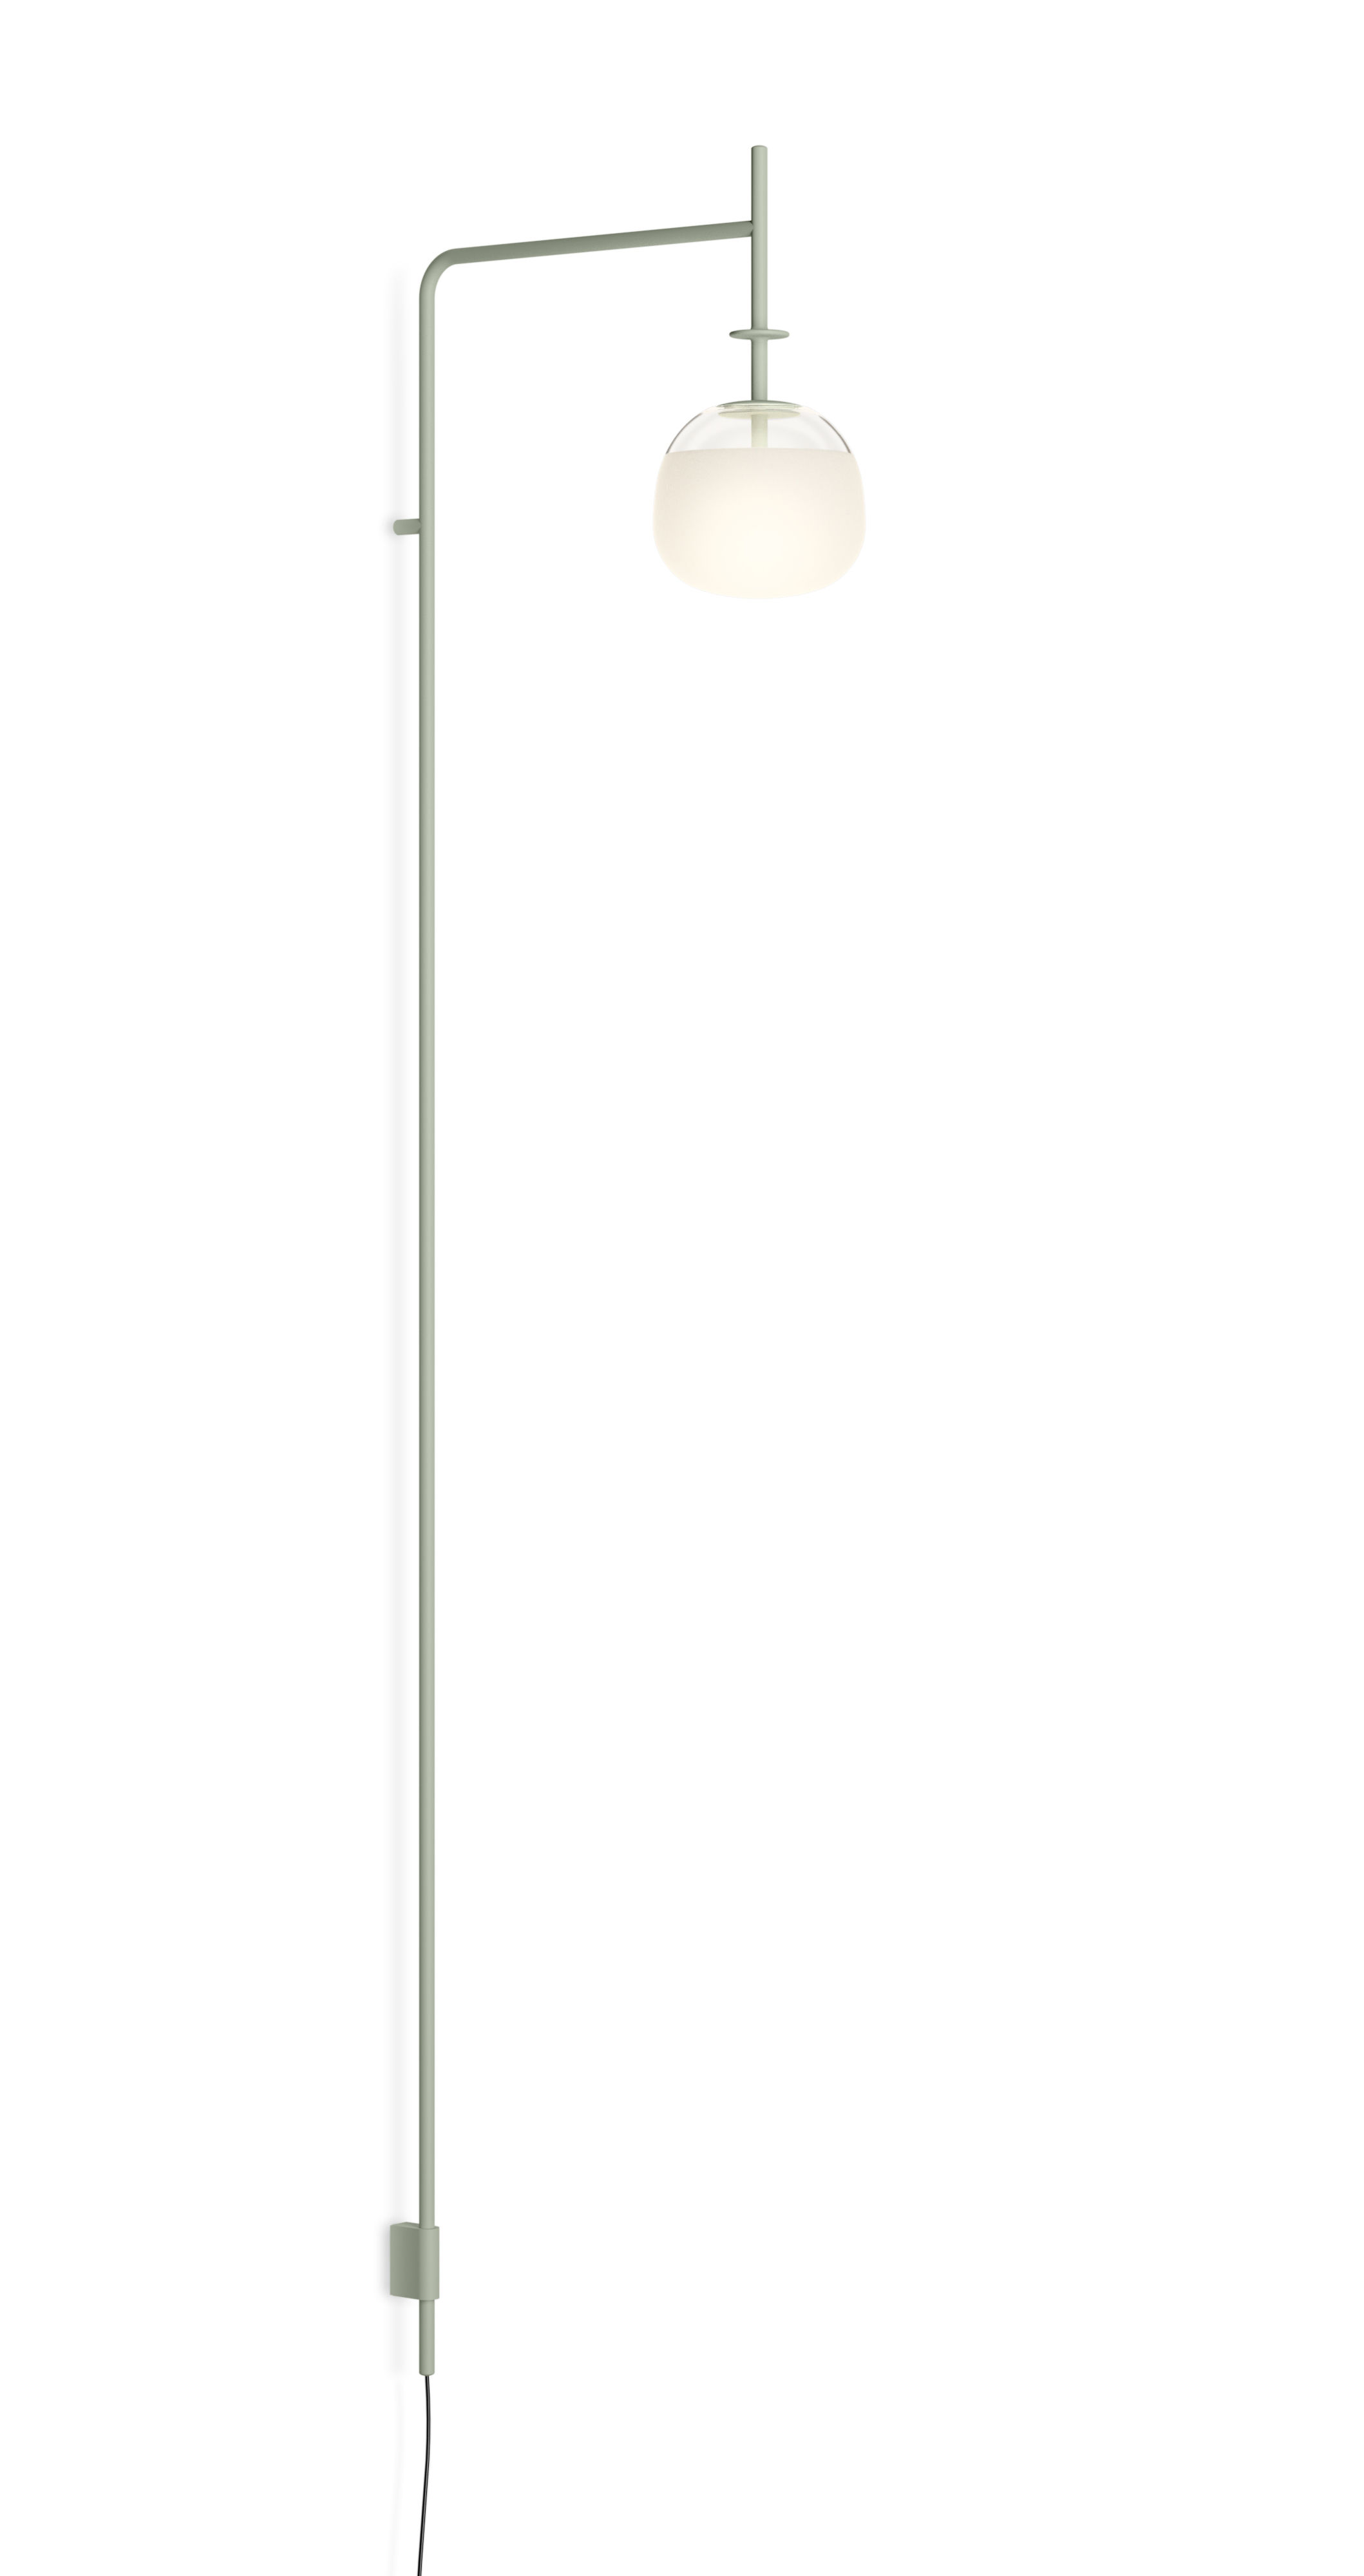 Lighting - Wall Lights - Tempo Globe Wall light - / LED - Fixed arm L 36 cm by Vibia - Green - Blown glass, Lacquered steel